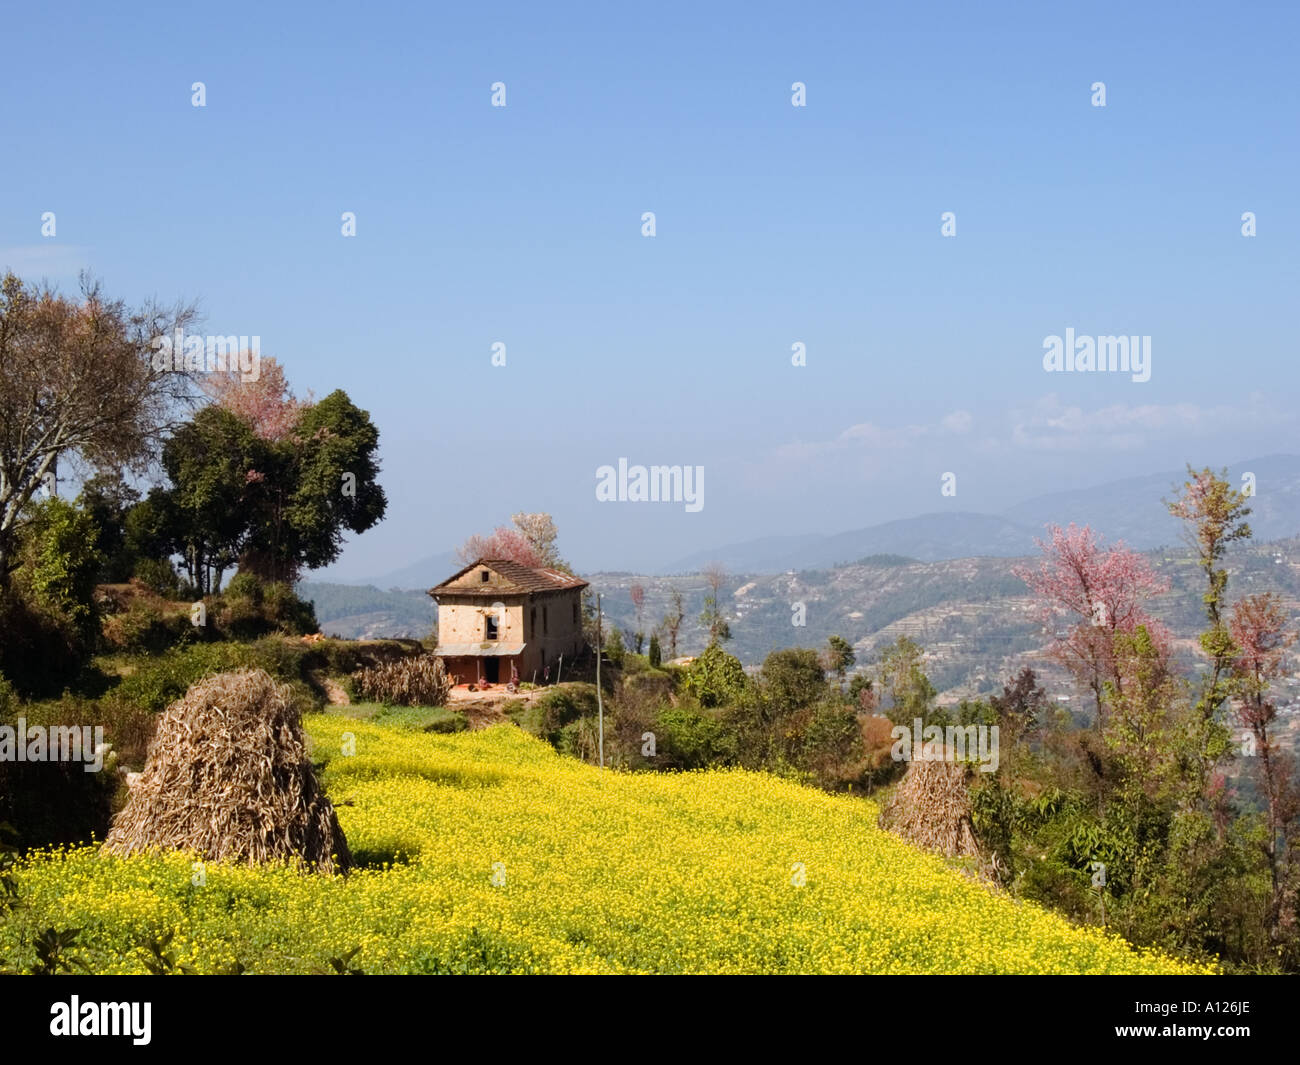 Farm growing mustard crop in the Himalayan foothills.  Dhulikhel Himalayas Nepal Asia - Stock Image